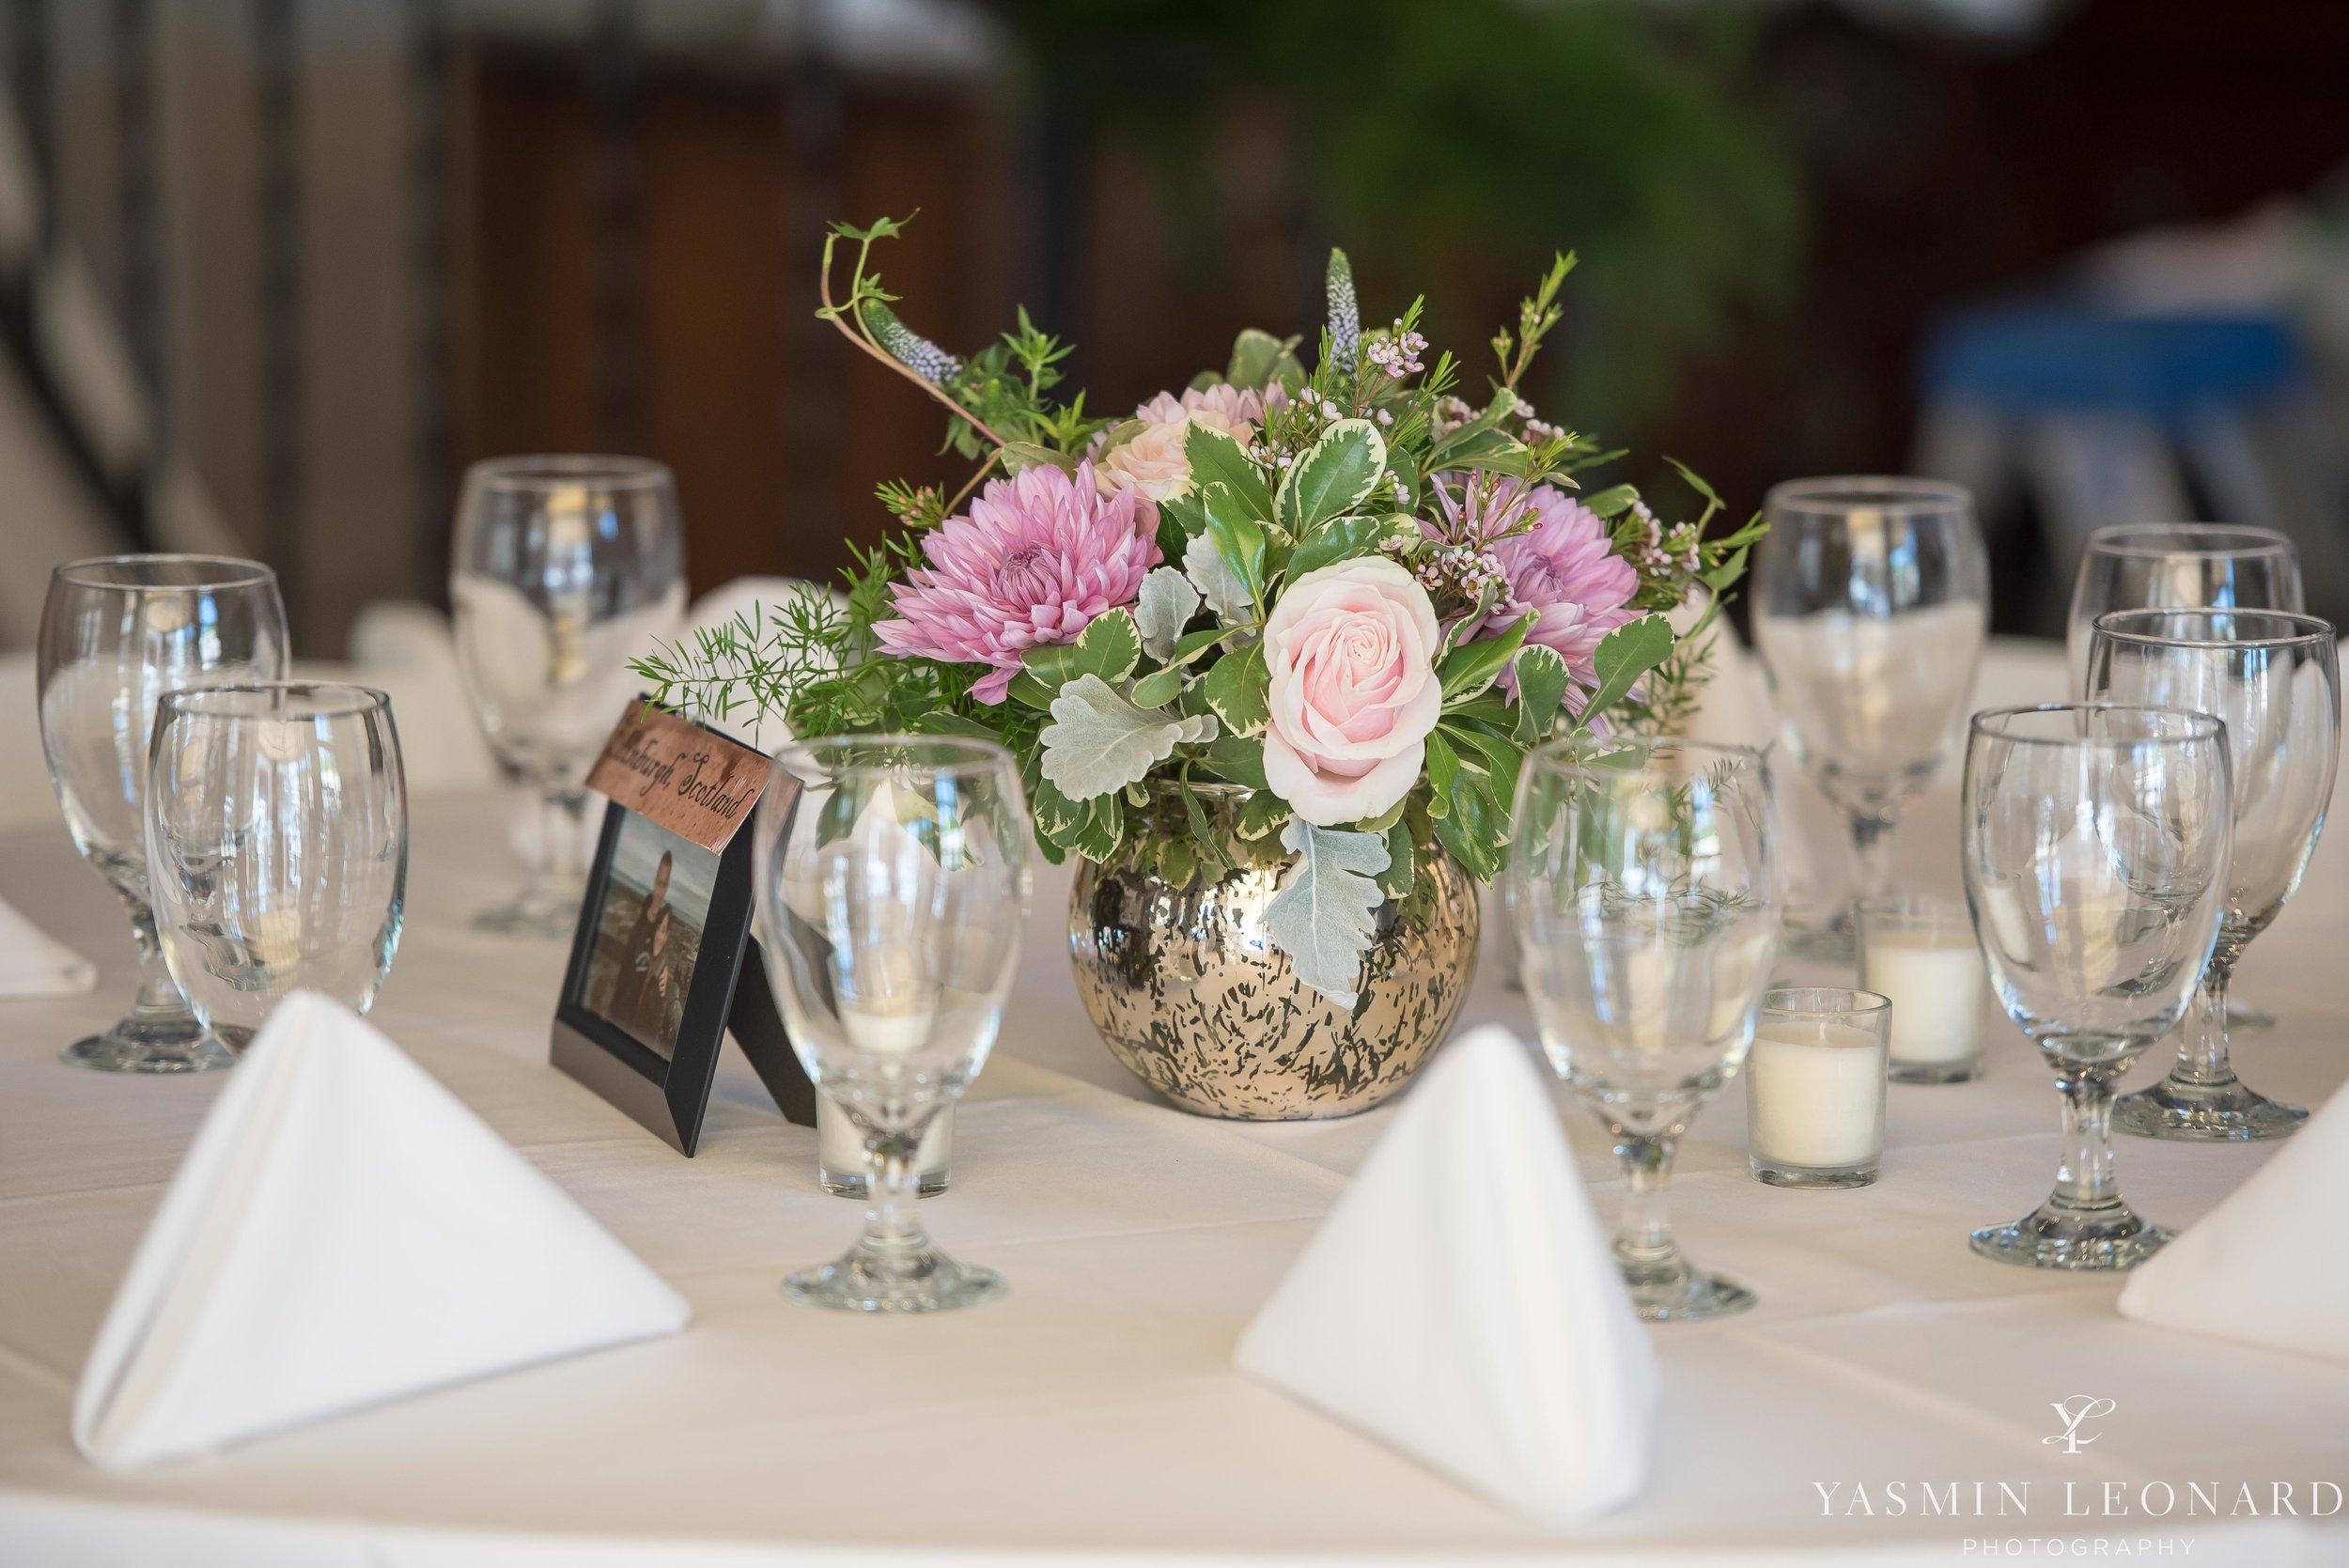 JH ADAMS INN - HIGH POINT UNIVERSITY CHAPEL WEDDING - HPU CHAPEL - HIGH POINT WEDDINGS - NC WEDDING PHOTOGRAPHER - YASMIN LEONARD PHOTOGRAPHY - HIGH POINT NC - HIGH POINT WEDDINGS -18.jpg